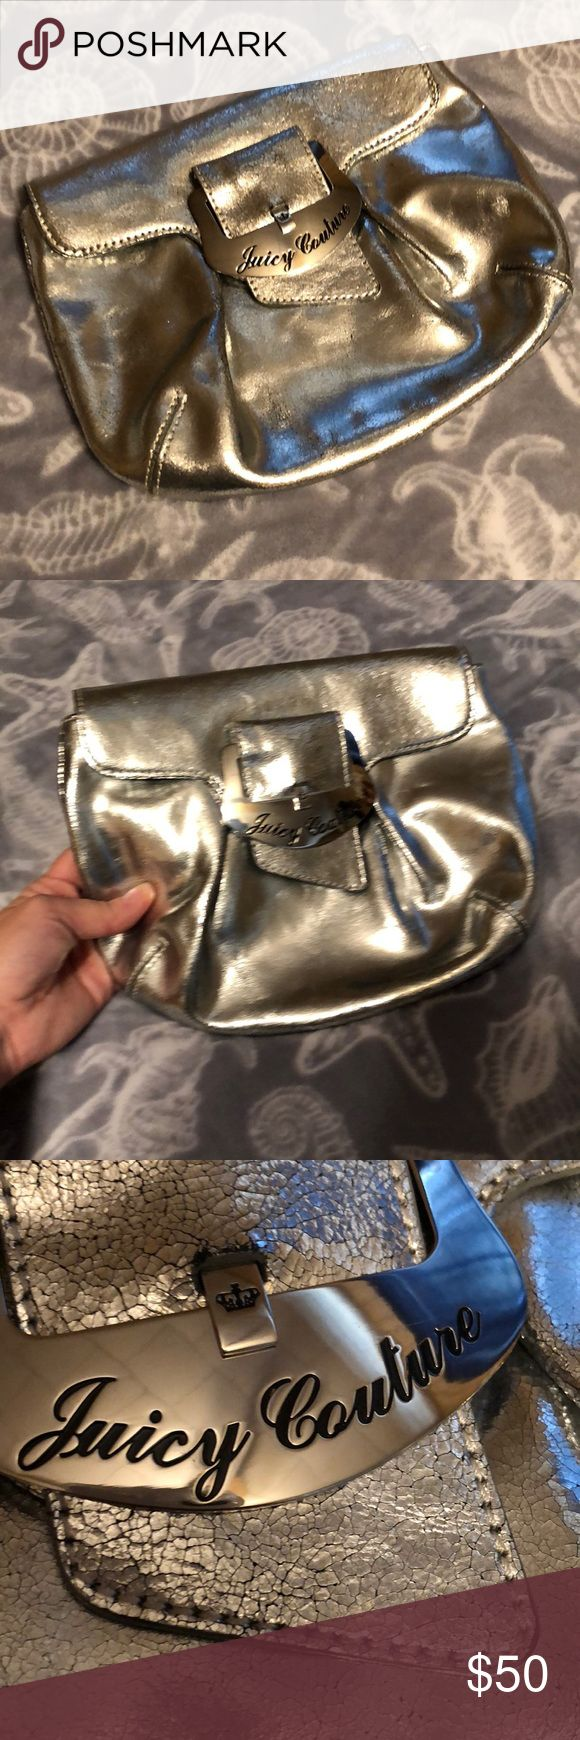 Juicy Couture Authentic Silver Metallic Clutch Used once this is in amazing condition! No marks or stains! Great for a night out, has credit card/ID holder built inside. Juicy Couture Bags Clutches & Wristlets